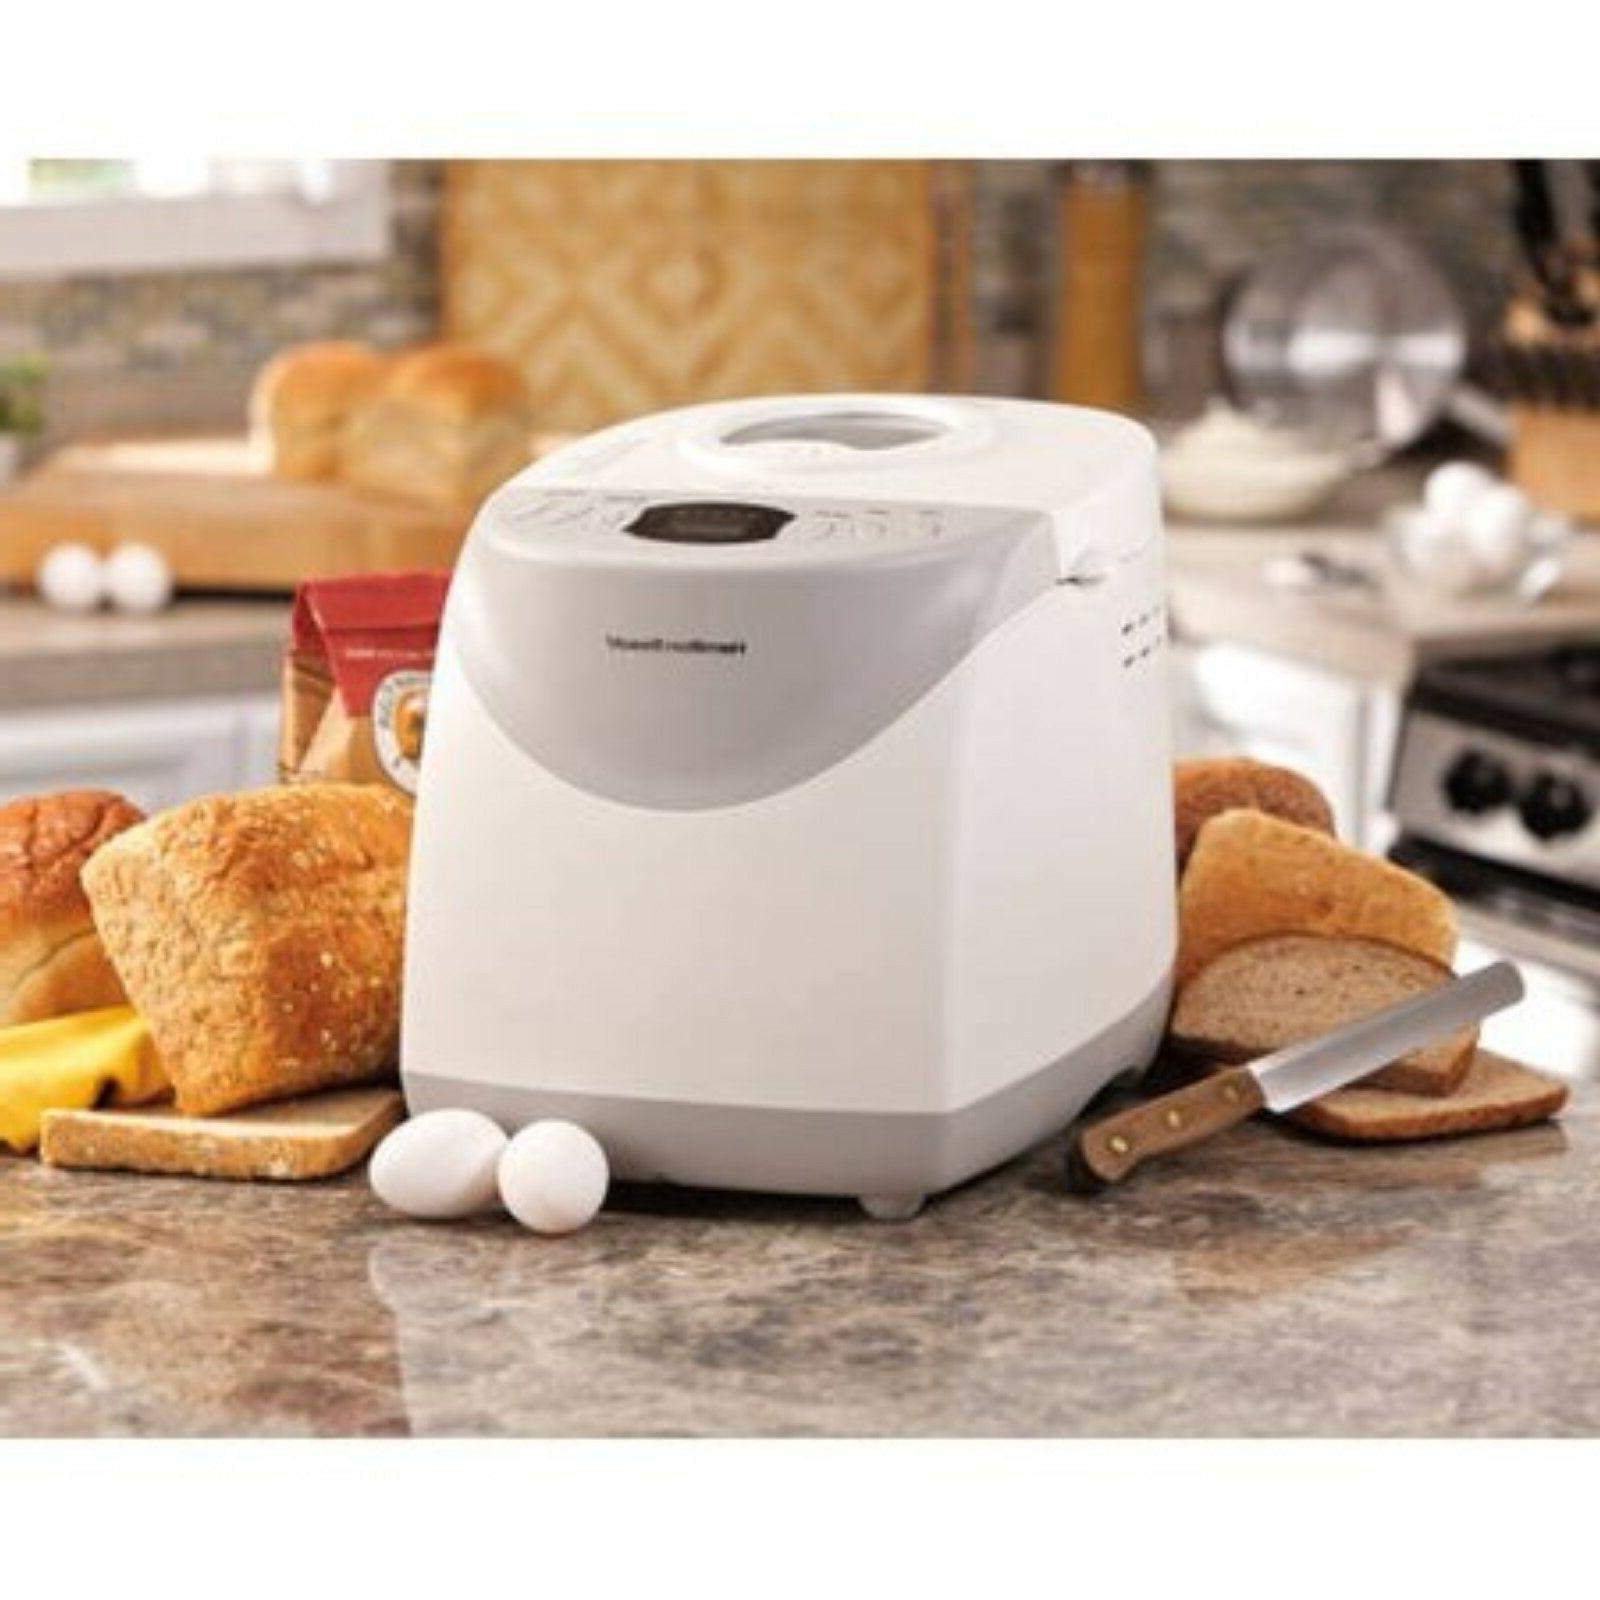 Hamilton Bread Maker Breadmaker Home Kitchen Bakery 2lb